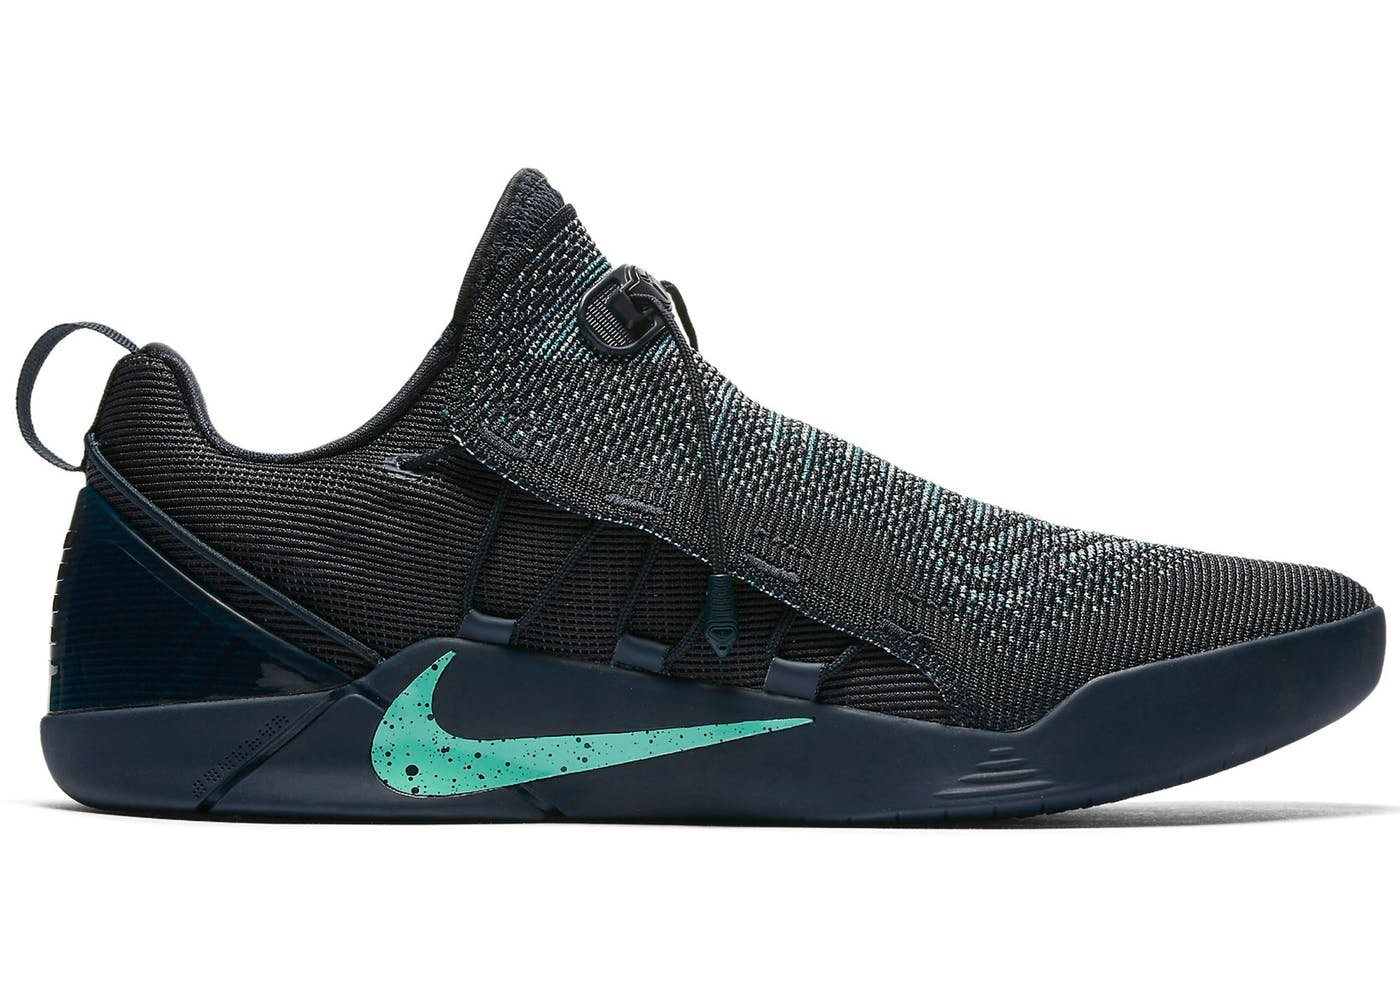 NIKE Men's Kobe A.D. NXT AD, Mambacurial FC Barcelona College Navy Igloo, 14 M US